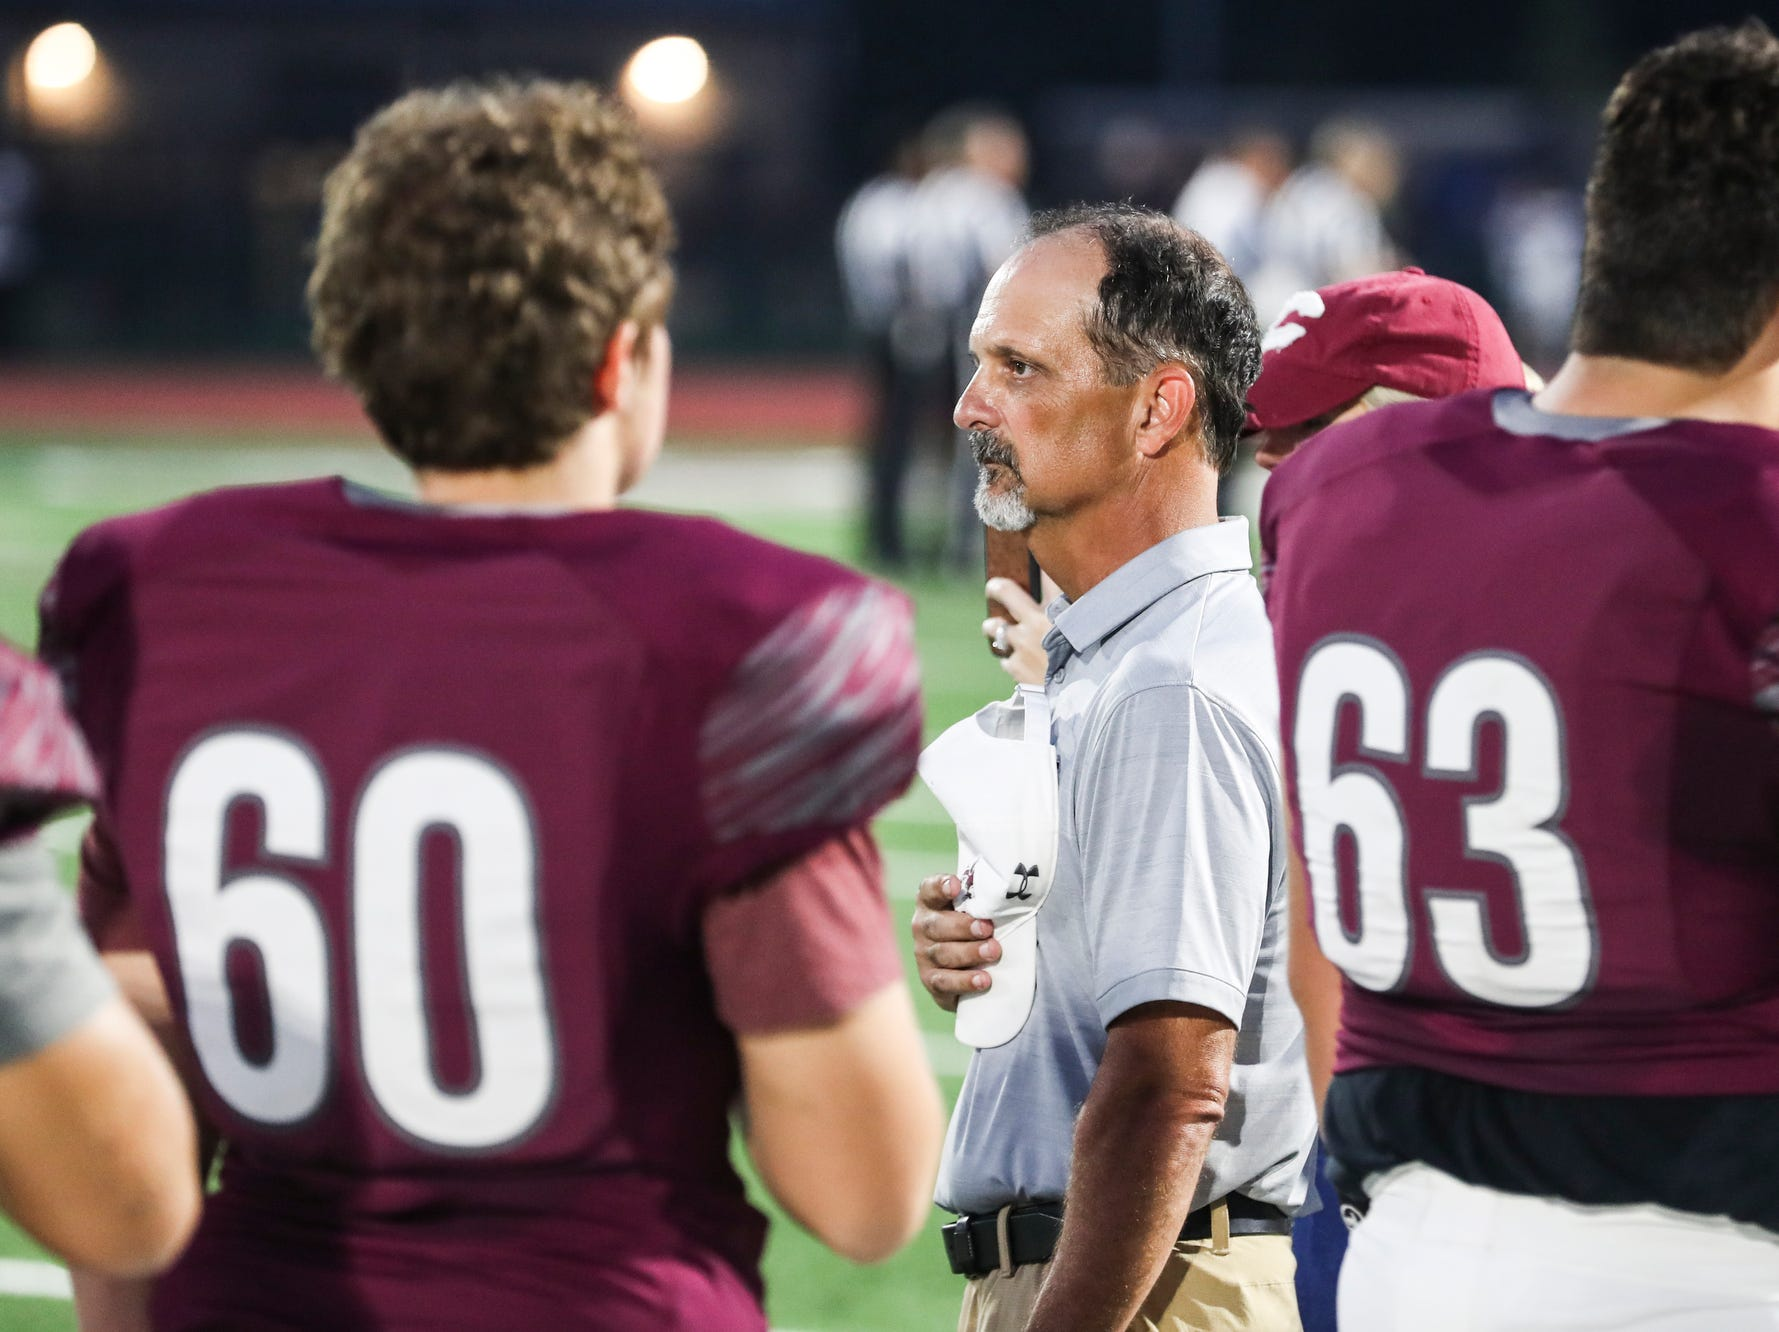 September 21 2018 - Collierville's head coach Mike O'Neill before the start of Friday night's game versus Wooddale at Collierville High School.